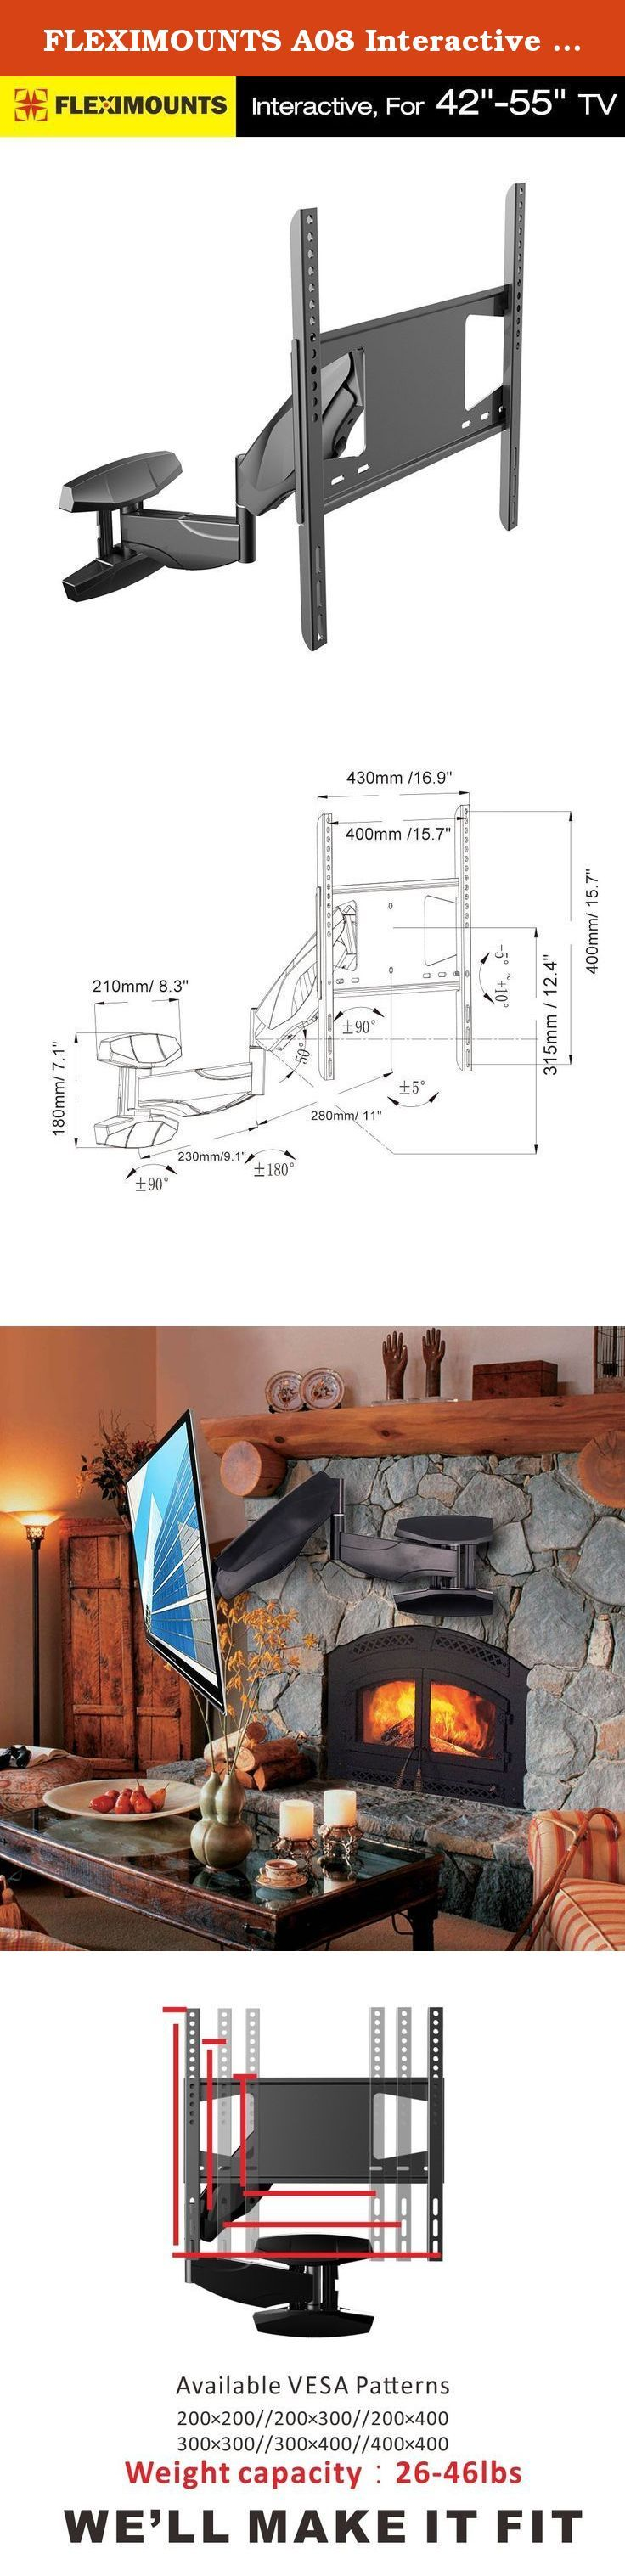 """FLEXIMOUNTS A08 Interactive Full Motion TV Wall Mount fits for most of 42""""-55"""" Samsung/Coby/LG/TCL/Haier/Hisense/VIZIO/Sharp/Sony/Toshiba/Seiki LCD LED Tvs. Features: 1. Free Gas Springs Hovering System: adjustable in vertical direction 2. Full rotation:360 degrees at any position 3. Angle Free Tilt Function: Self-locking mechanical construction provides effortless adjustment of viewing angle without tightening the knob. 4. Extended aluminum arm: offers wide-angle optimum viewing position…"""